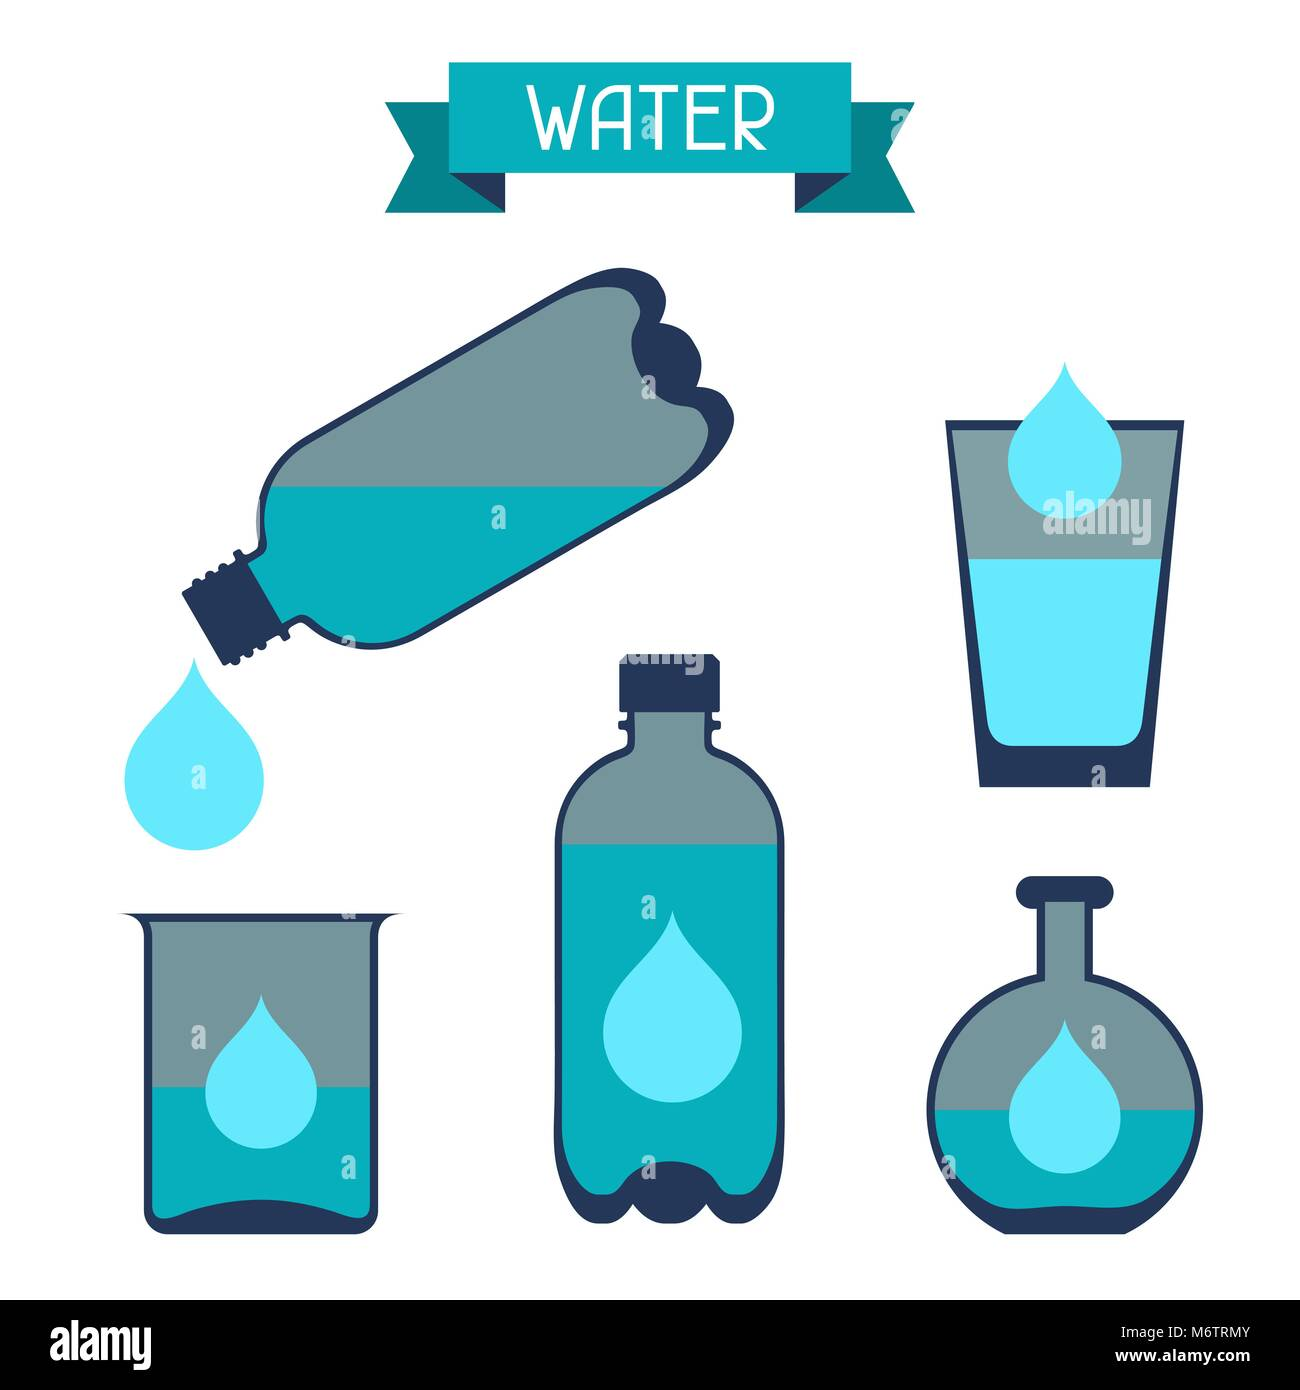 Water storage capacity icons in flat design style - Stock Vector